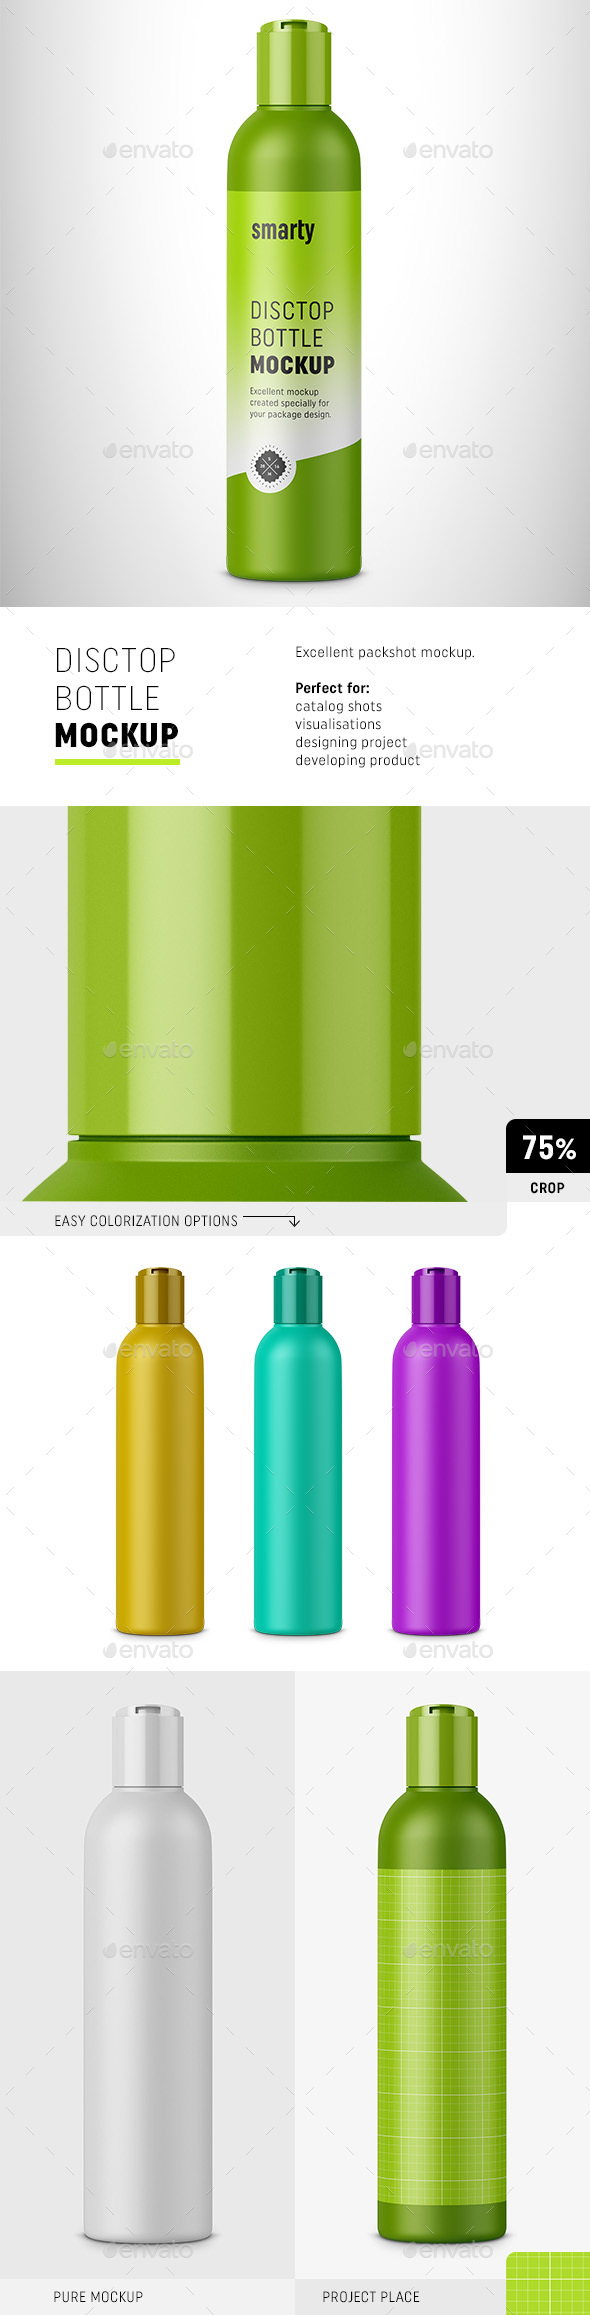 Cosmetic Bottle with Disctop